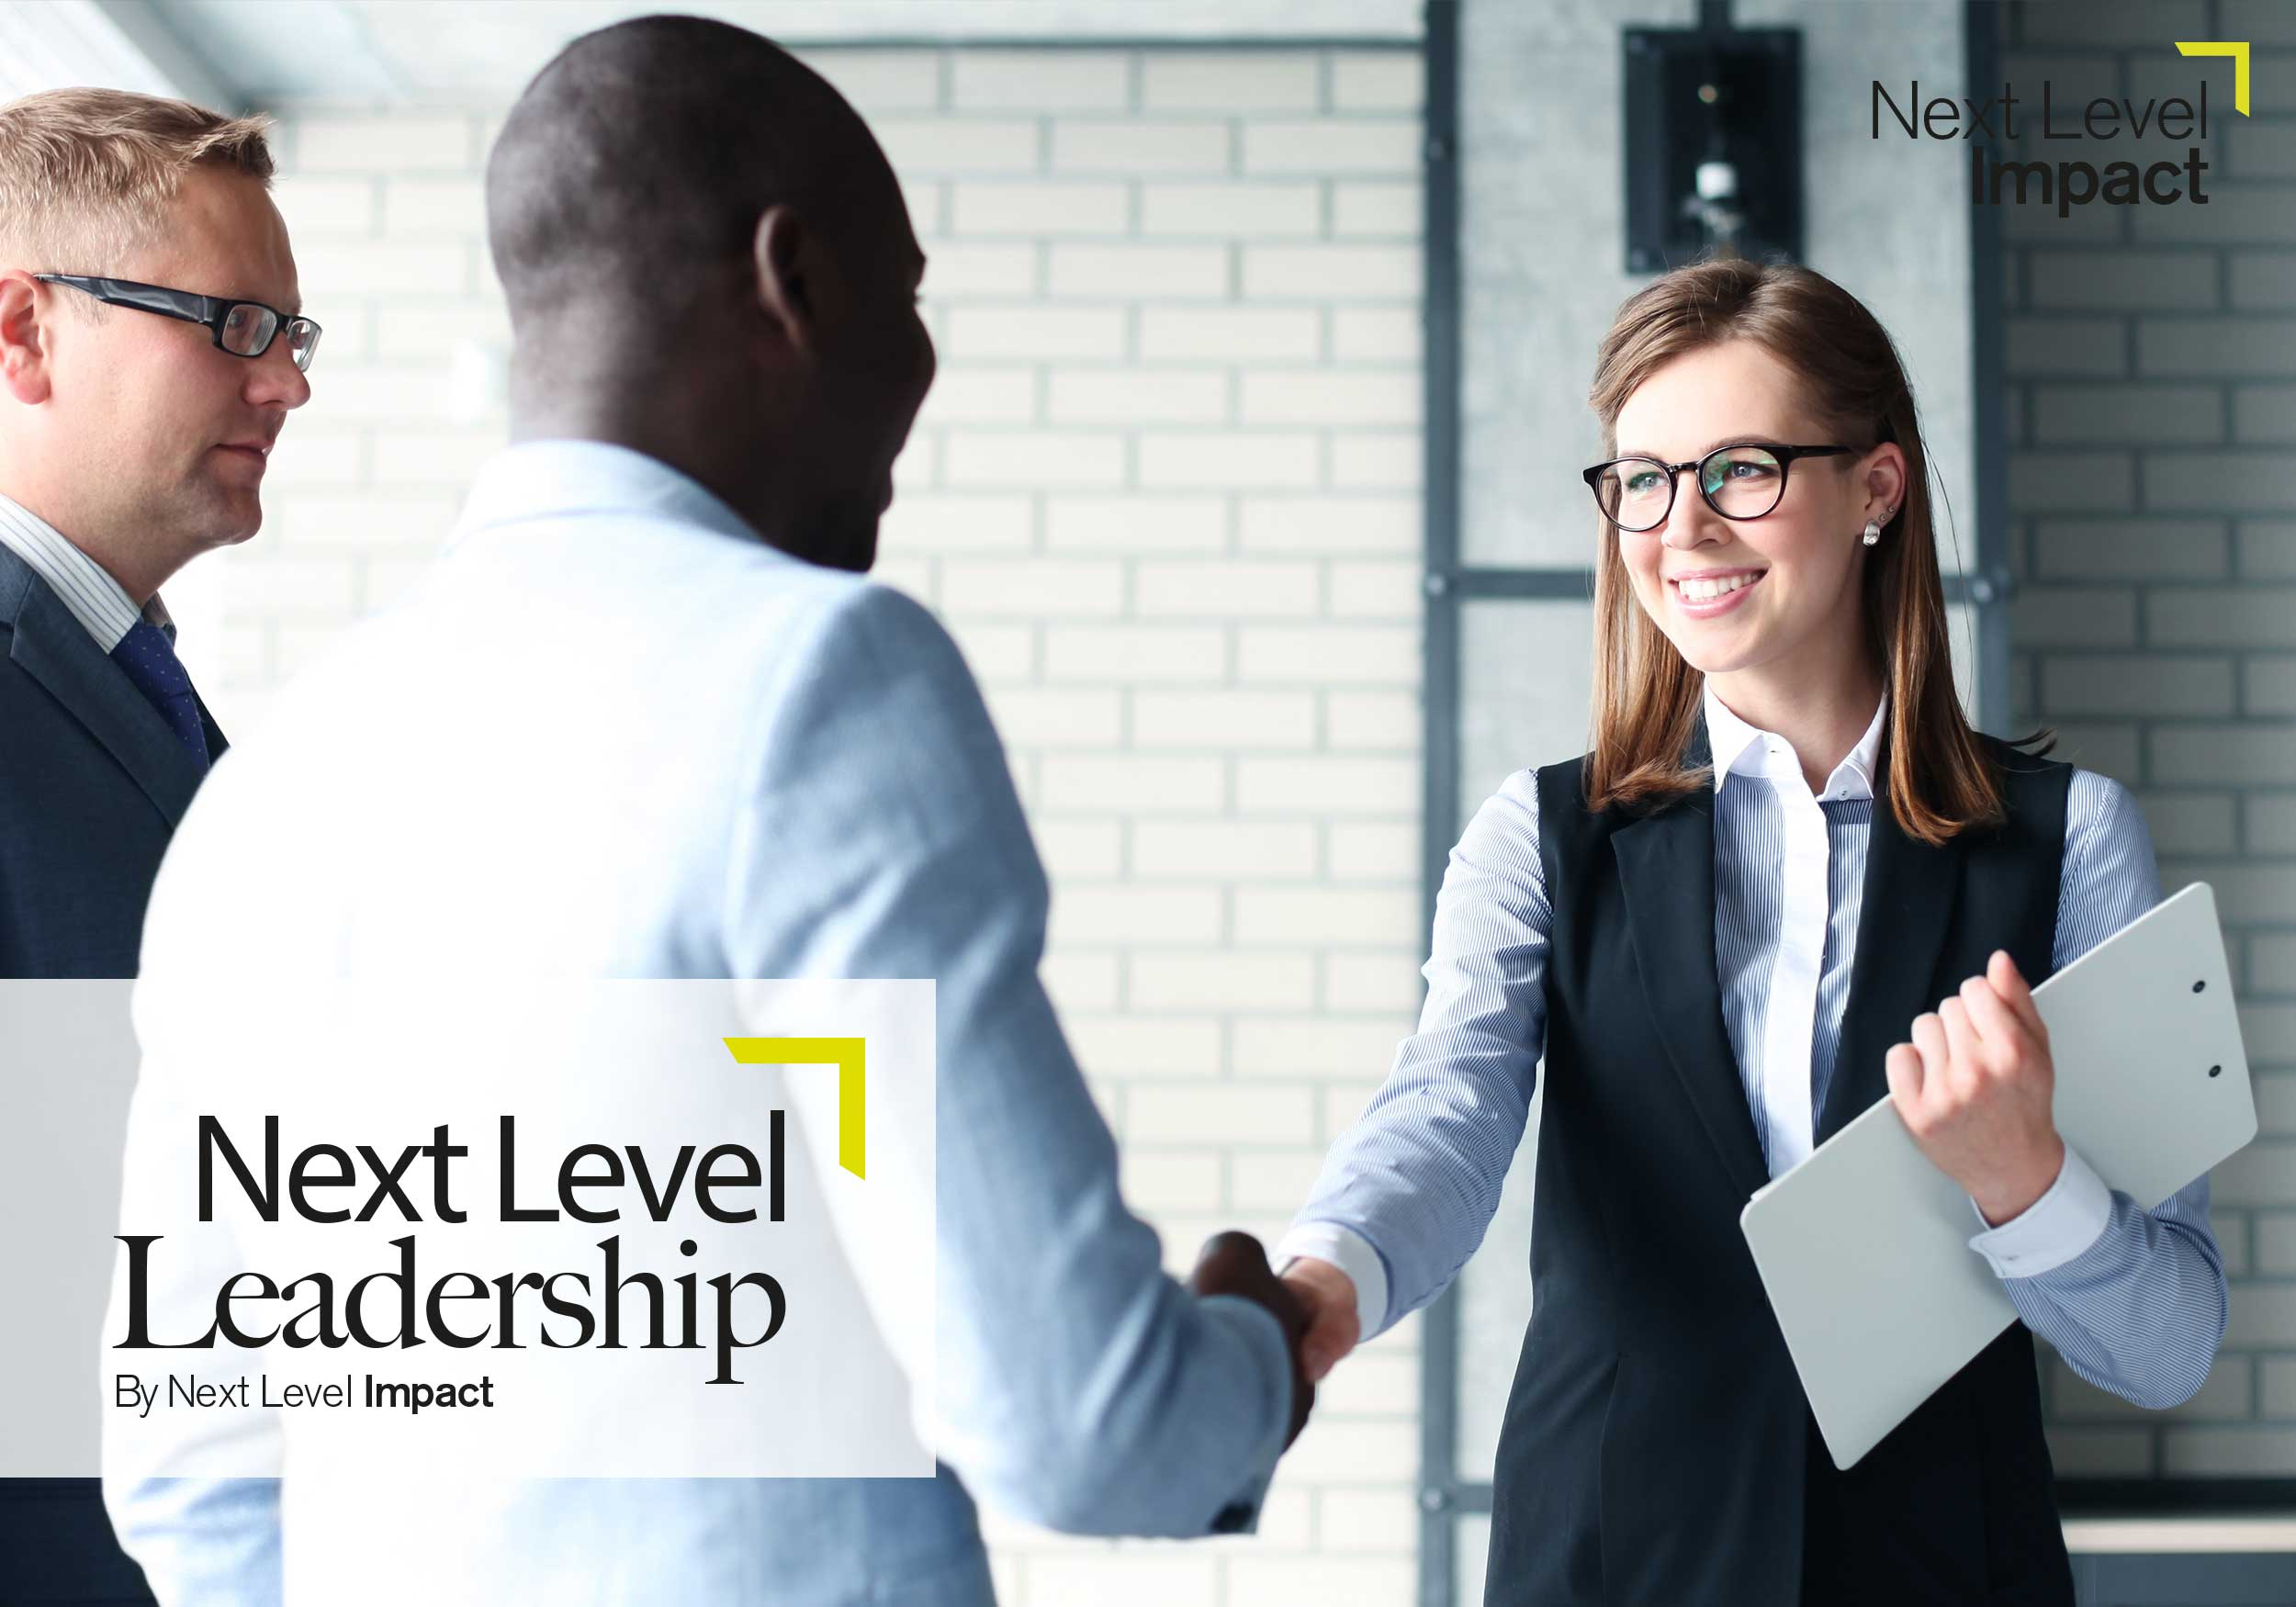 16605J-Next-Level-Leadership-Banner-green - Copy.jpg